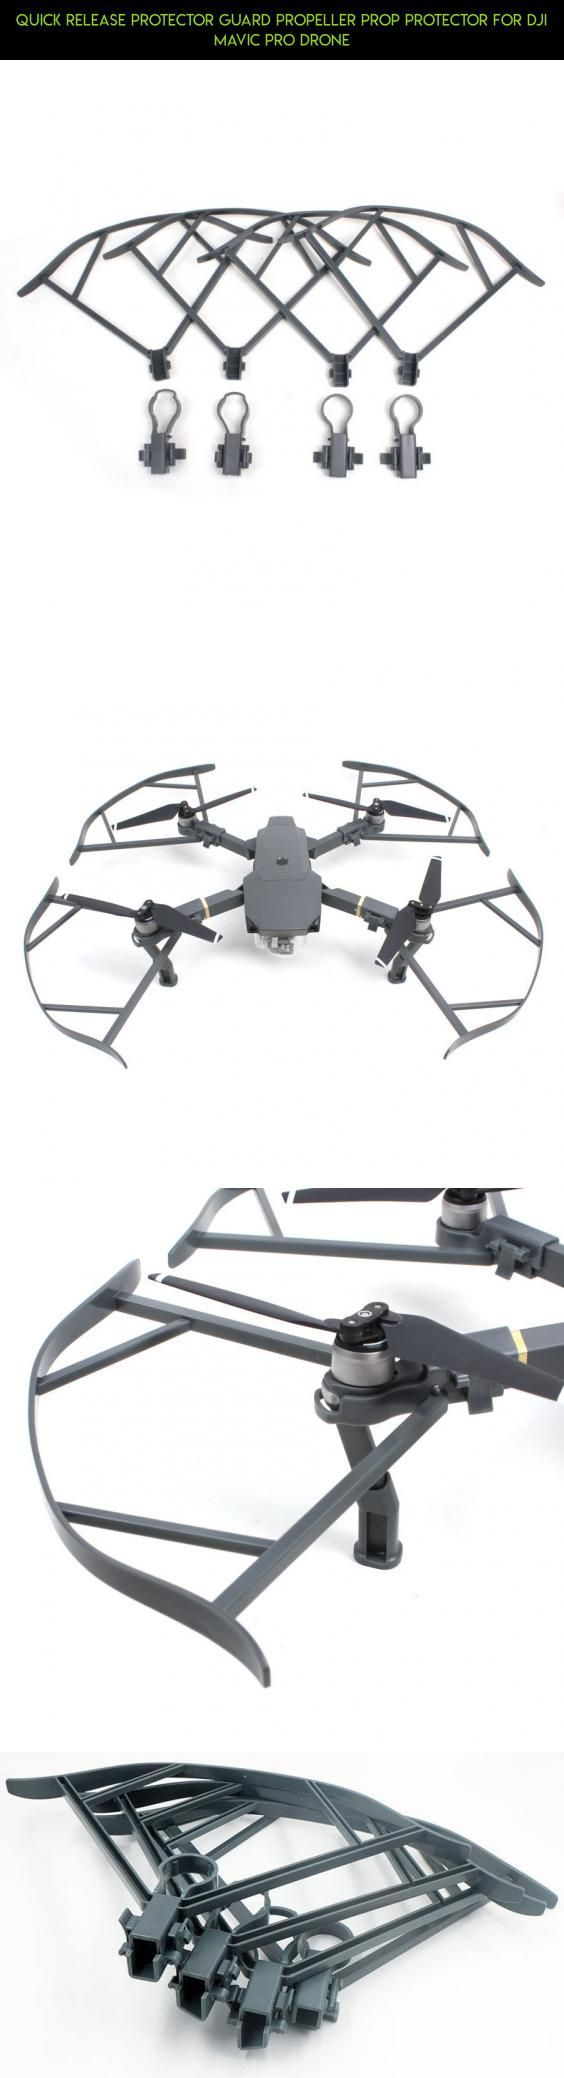 Quick Release Protector Guard Propeller Prop Protector For DJI Mavic Pro Drone #release #parts #pro #propeller #mavic #racing #drone #kit #drone #shopping #quick #gadgets #technology #plans #tech #products #fpv #camera